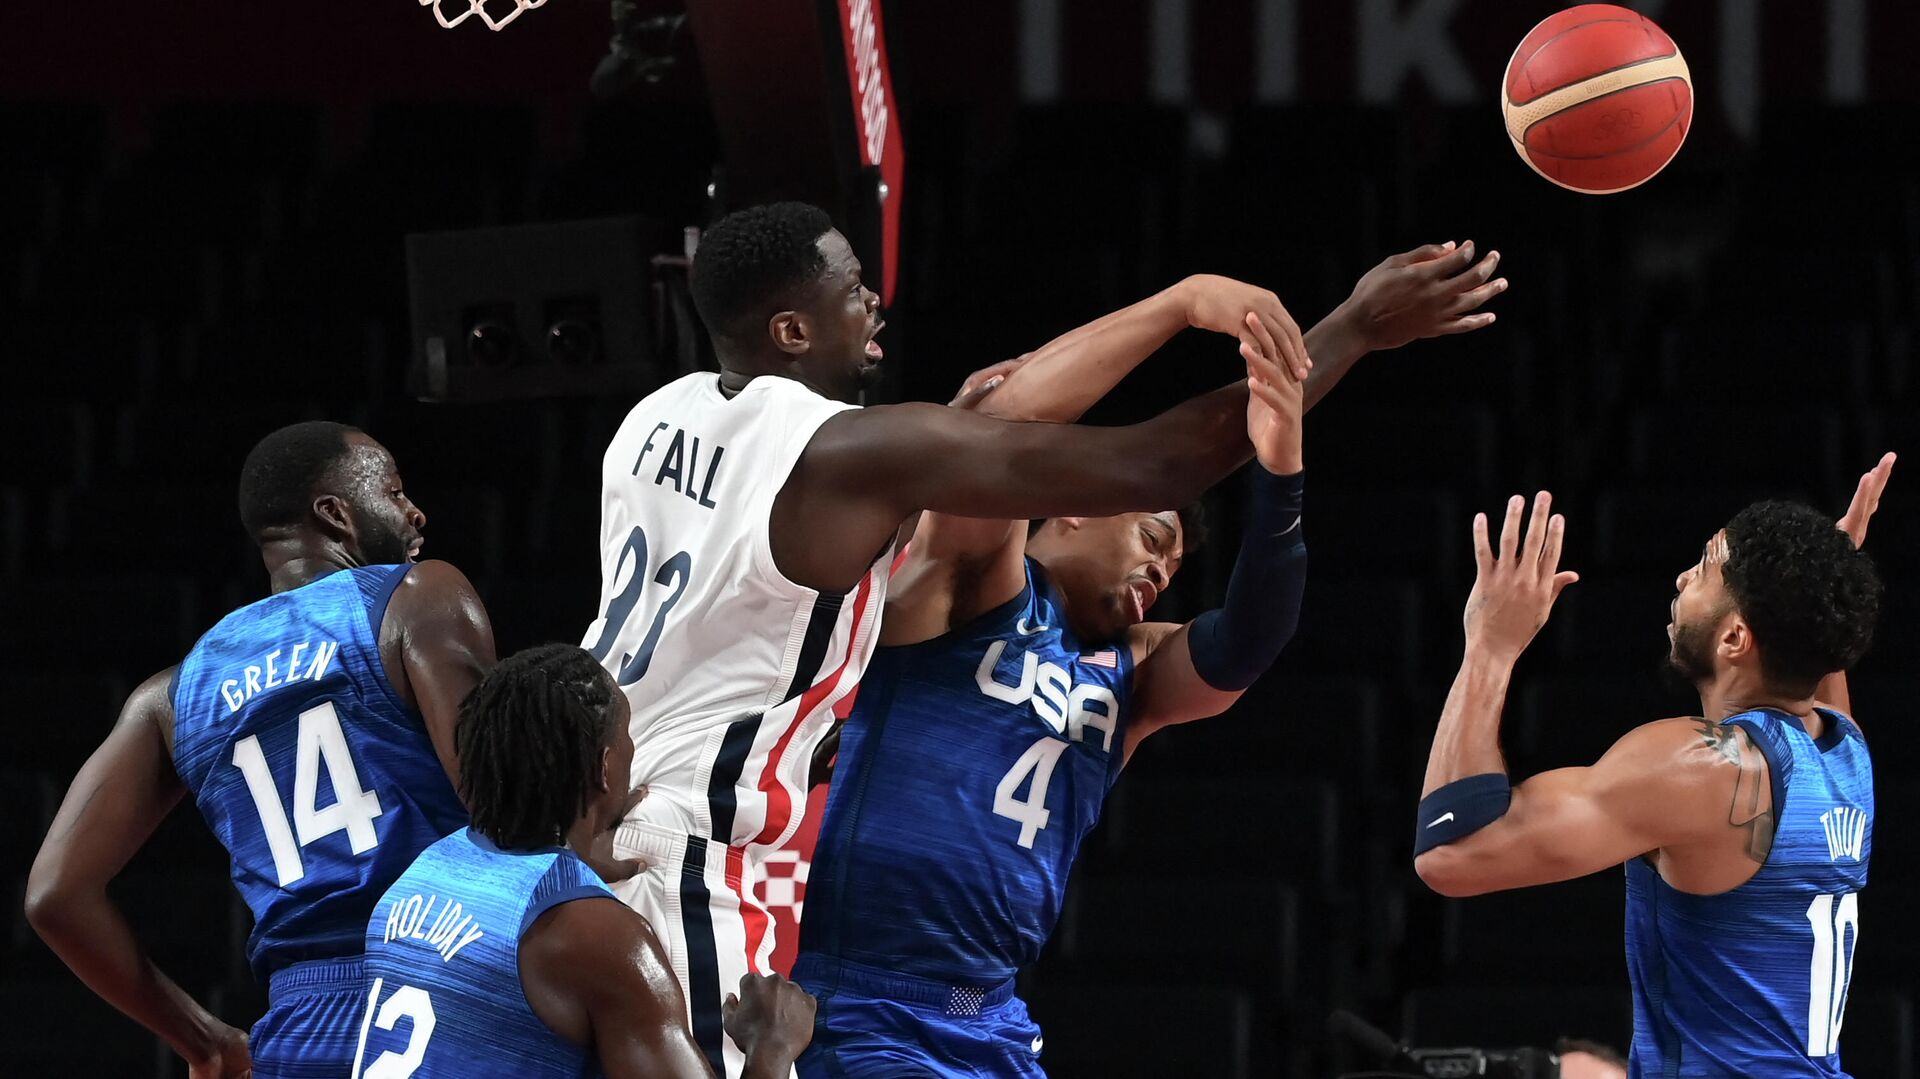 France's Moustapha Fall (3L) fights for the ball with USA's Keldon Johnson (2R) during the men's preliminary round group A basketball match between France and USA during the Tokyo 2020 Olympic Games at the Saitama Super Arena in Saitama on July 25, 2021. (Photo by Aris MESSINIS / AFP) - РИА Новости, 1920, 25.07.2021